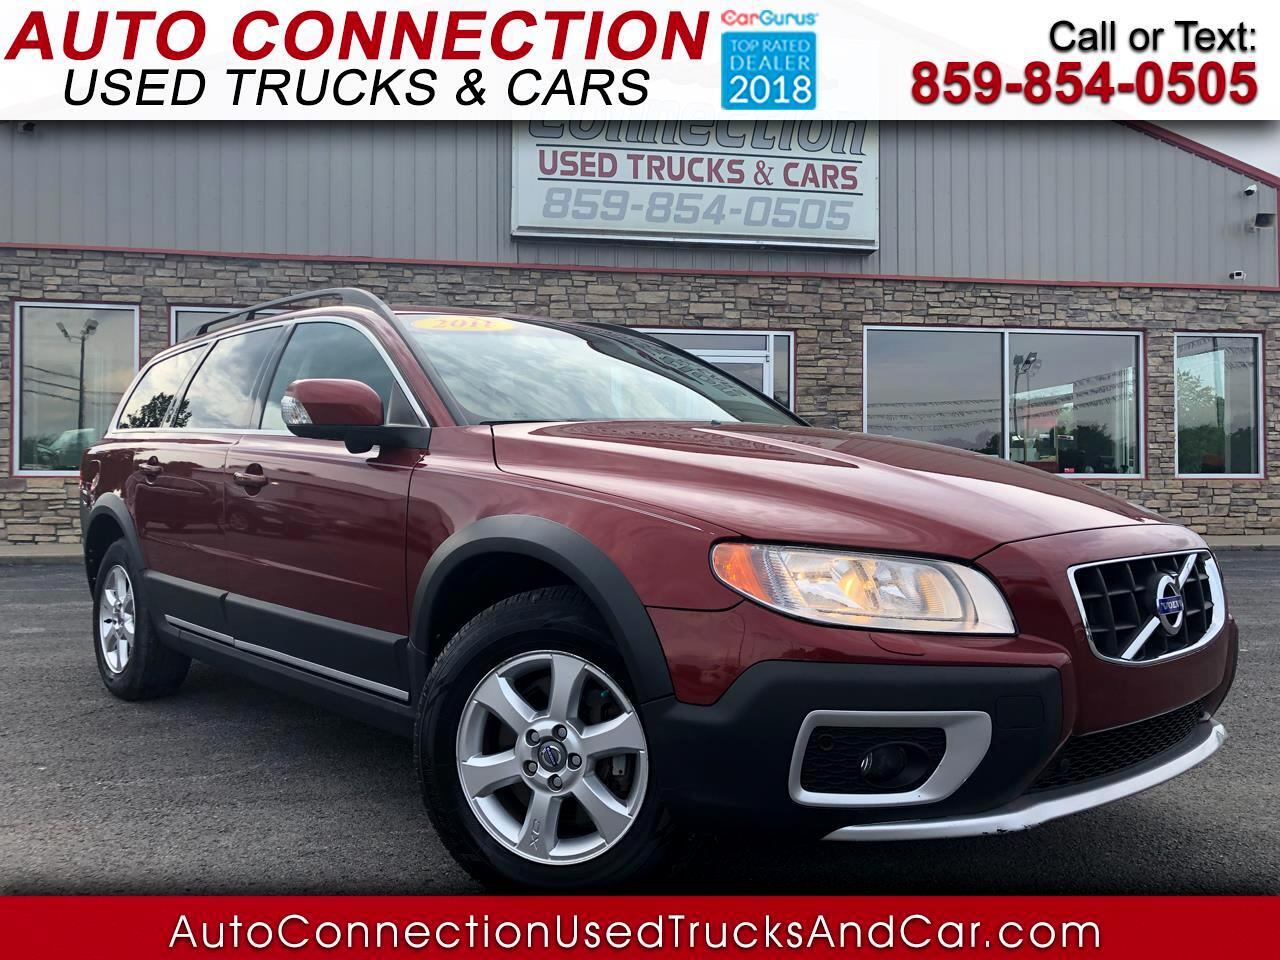 2011 Volvo XC70 4dr Wgn 3.2L AWD w/Moonroof